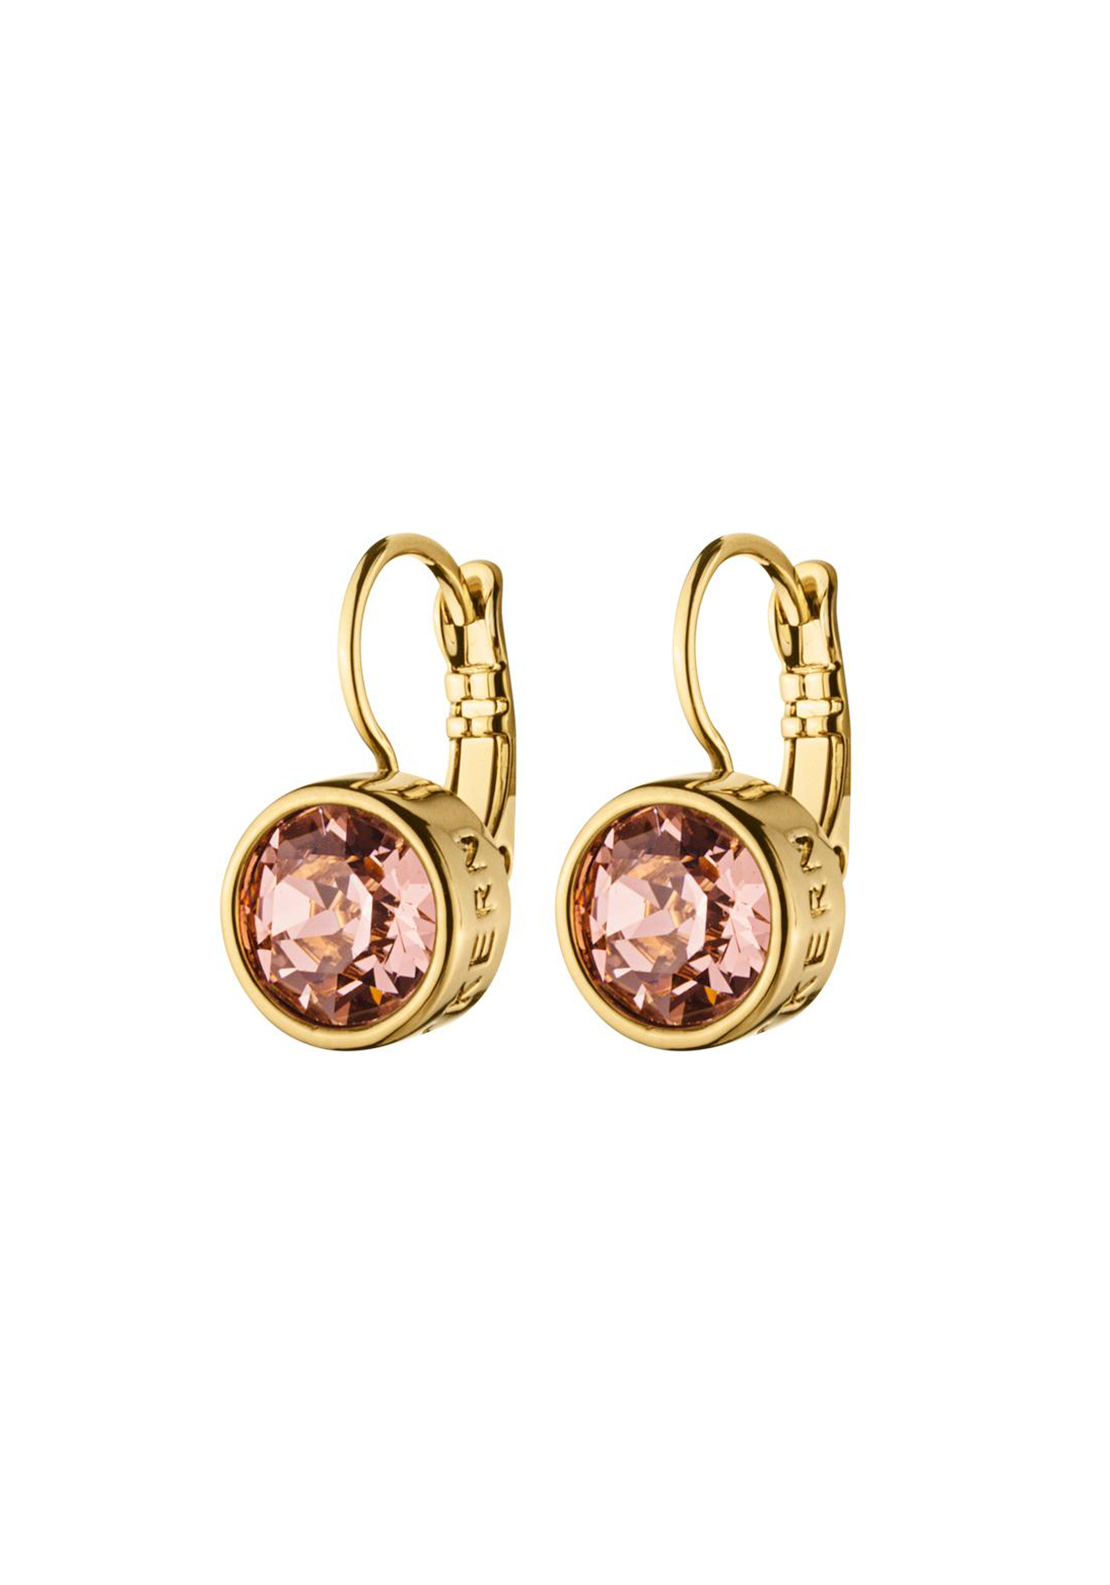 Dyrberg Kern Louise French Hook Earrings, Gold and Rose